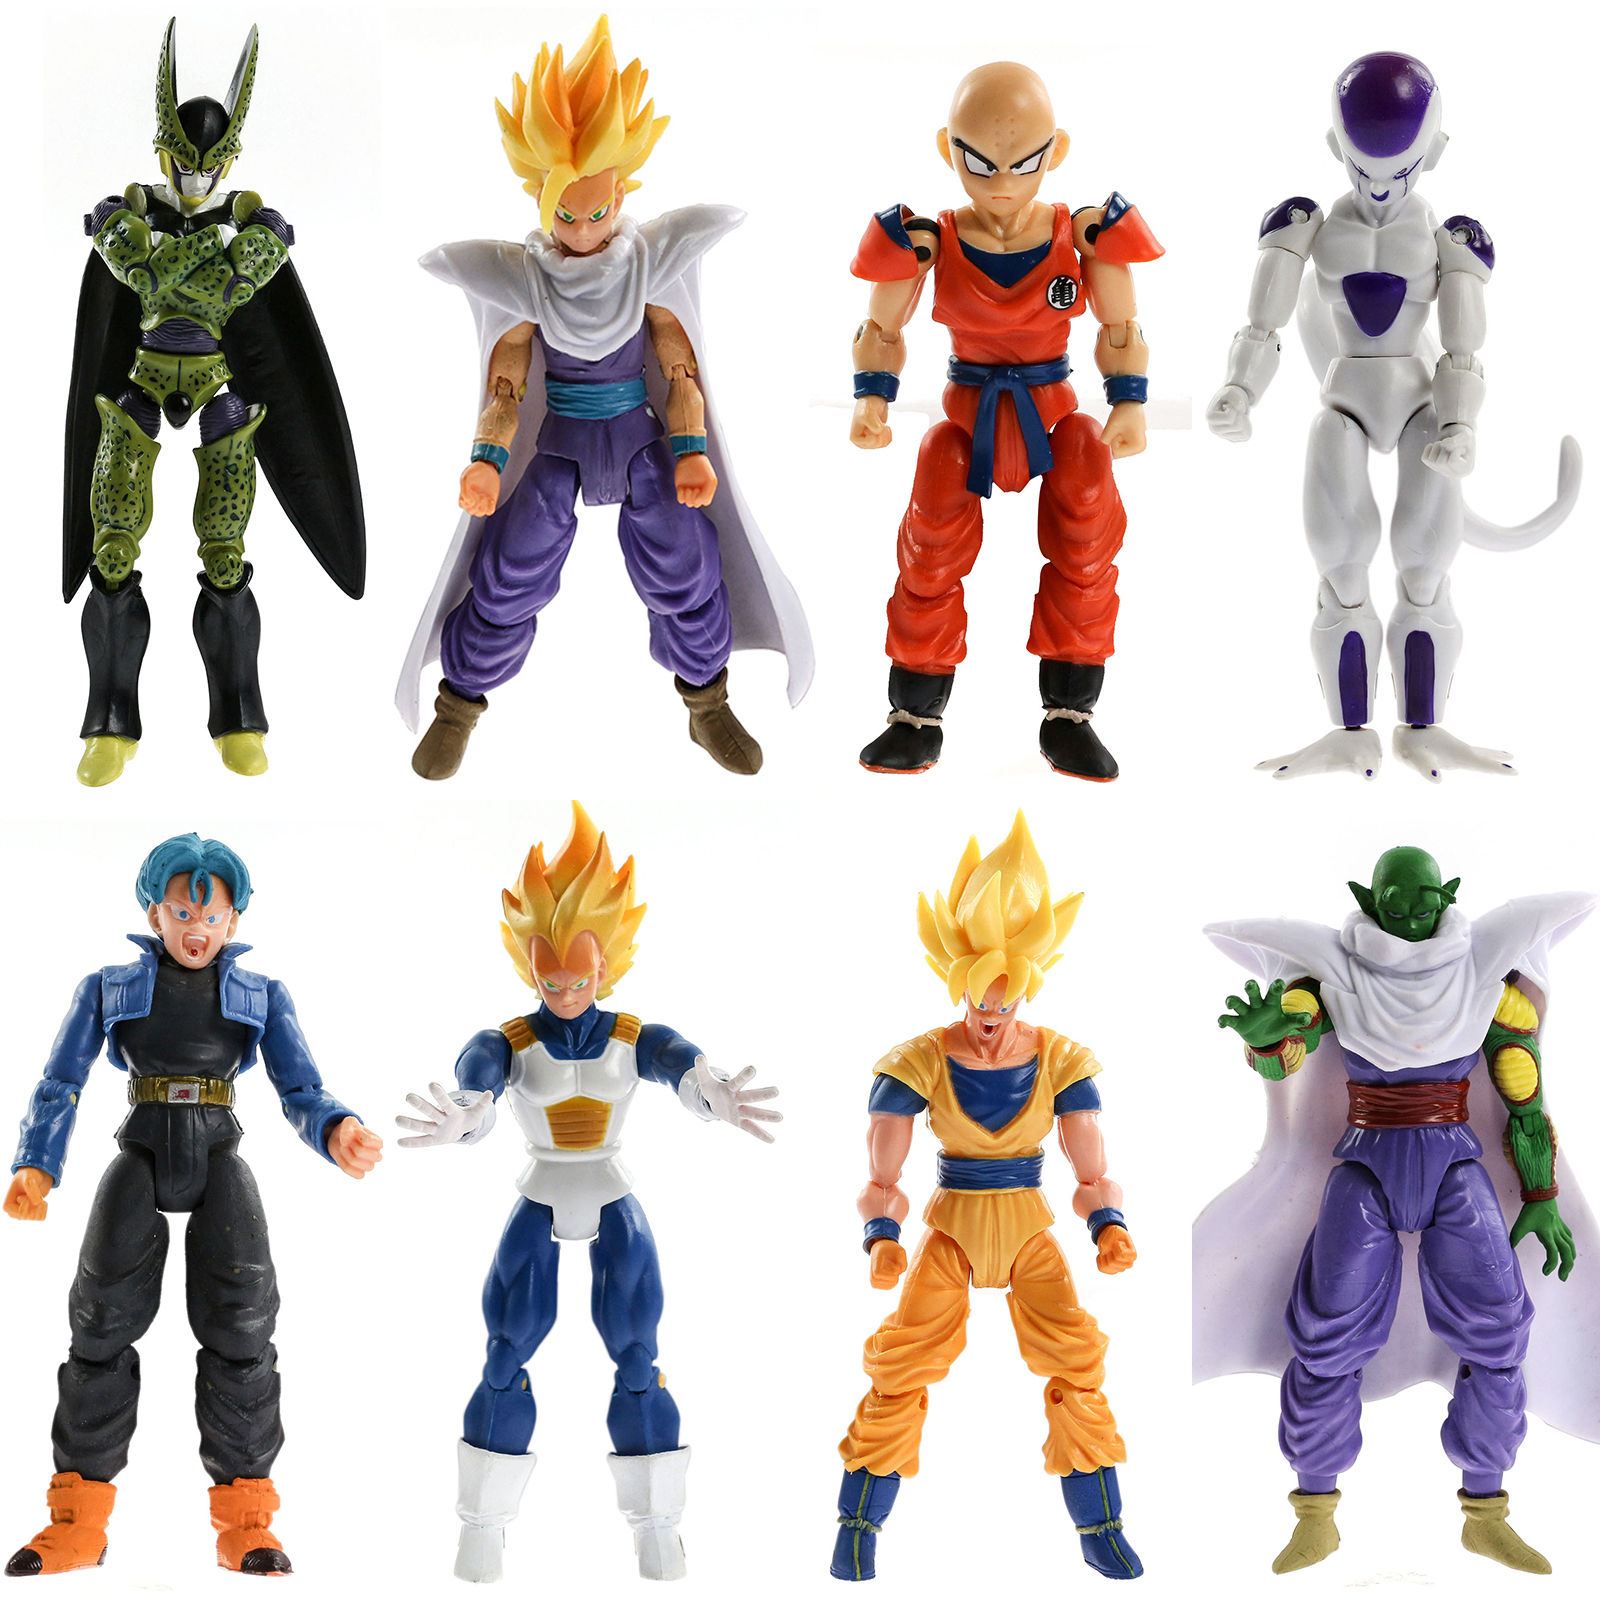 8Pcs Action Figures Toys Kids Gifts Toy Pvc Collections Christmas Model For Dragonball Z Dragon Ball DBZ Joint Movable 8pcs set the octonauts cartoon action figures kids toys captain barnacles medic peso model children birthday gifts with box